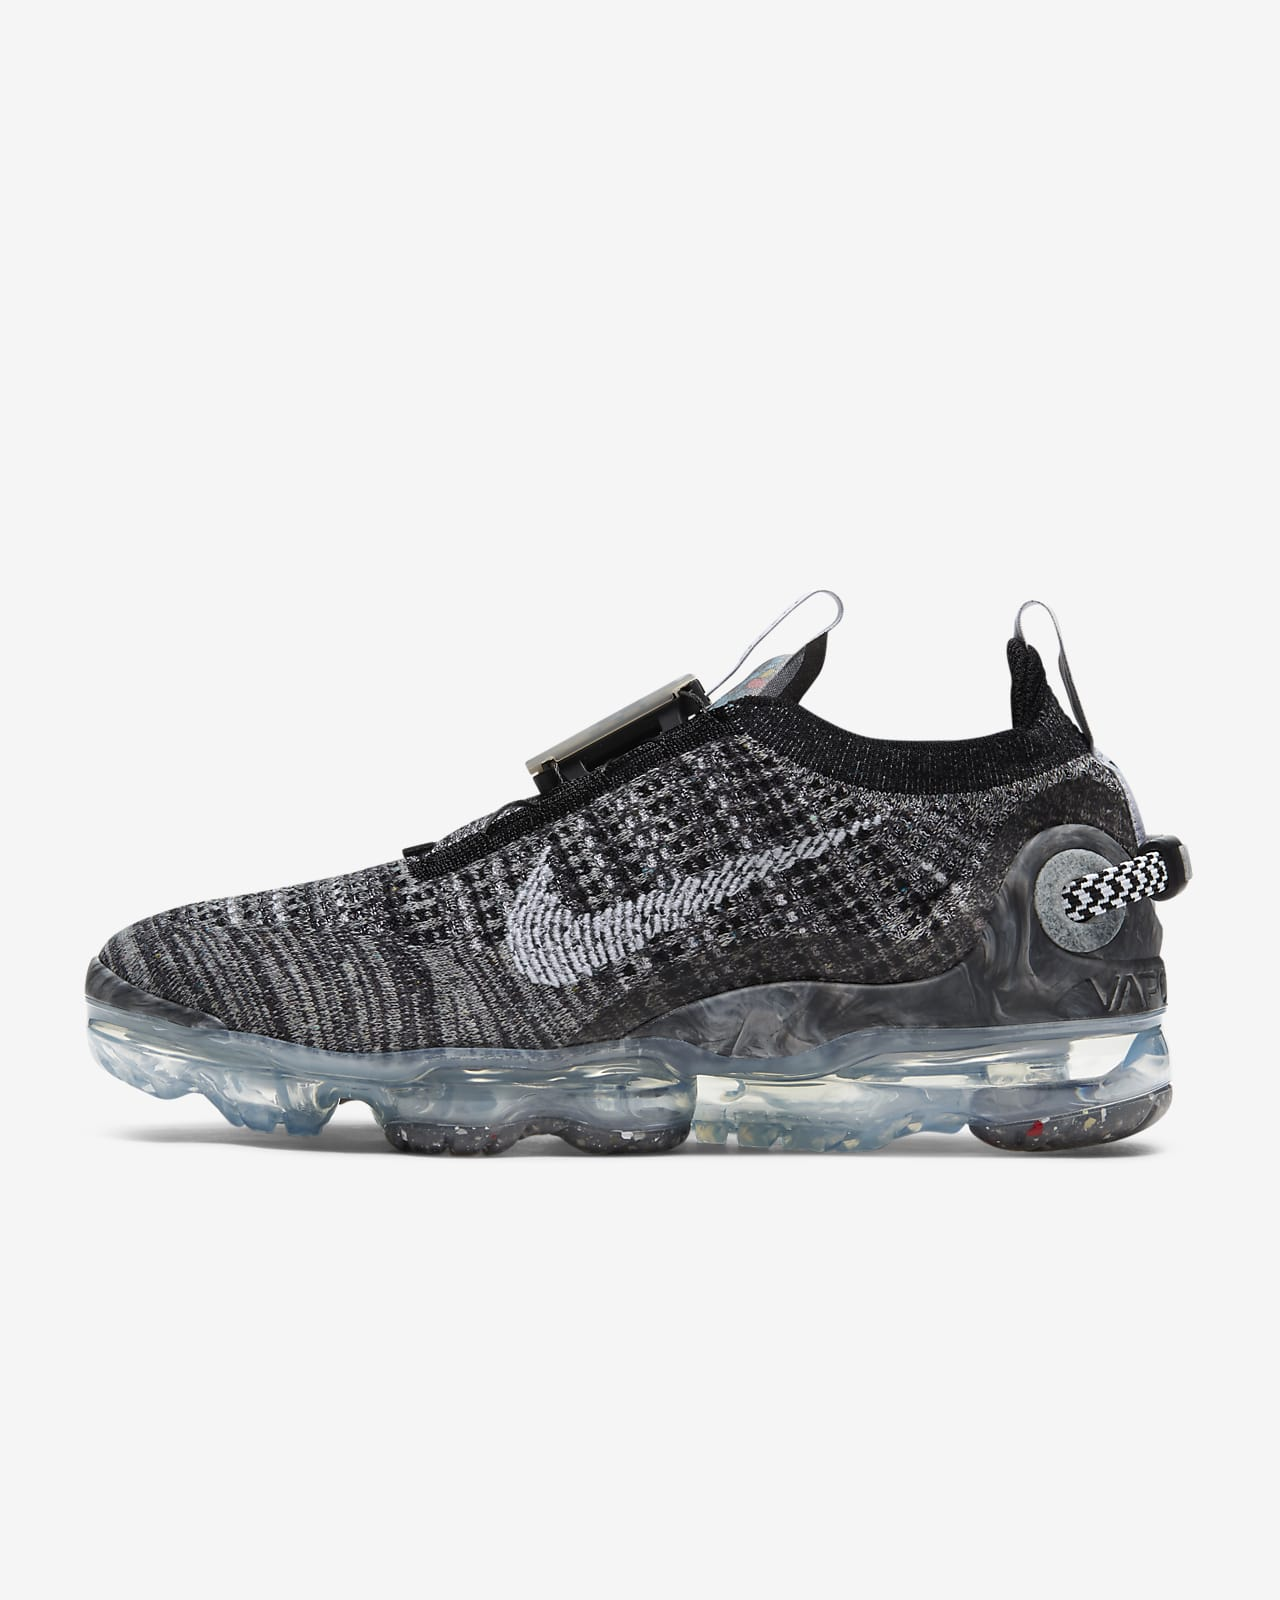 Chaussure Nike Air Vapormax 2020 Flyknit pour Femme